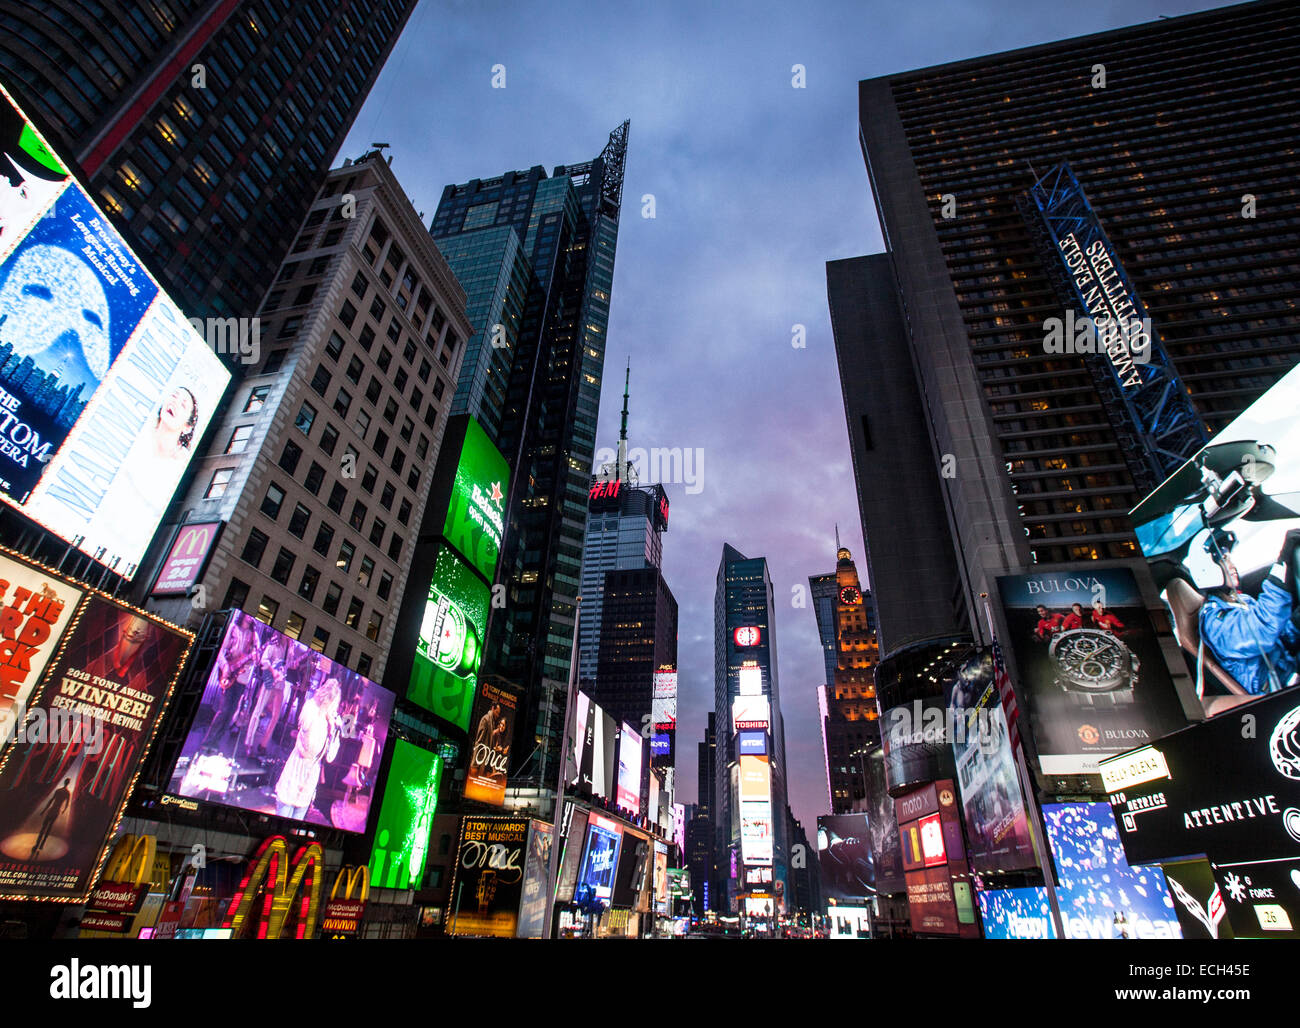 Neon signs, advertising in Times Square, junction of Broadway and Seventh Avenue, Manhattan, New York, United States - Stock Image